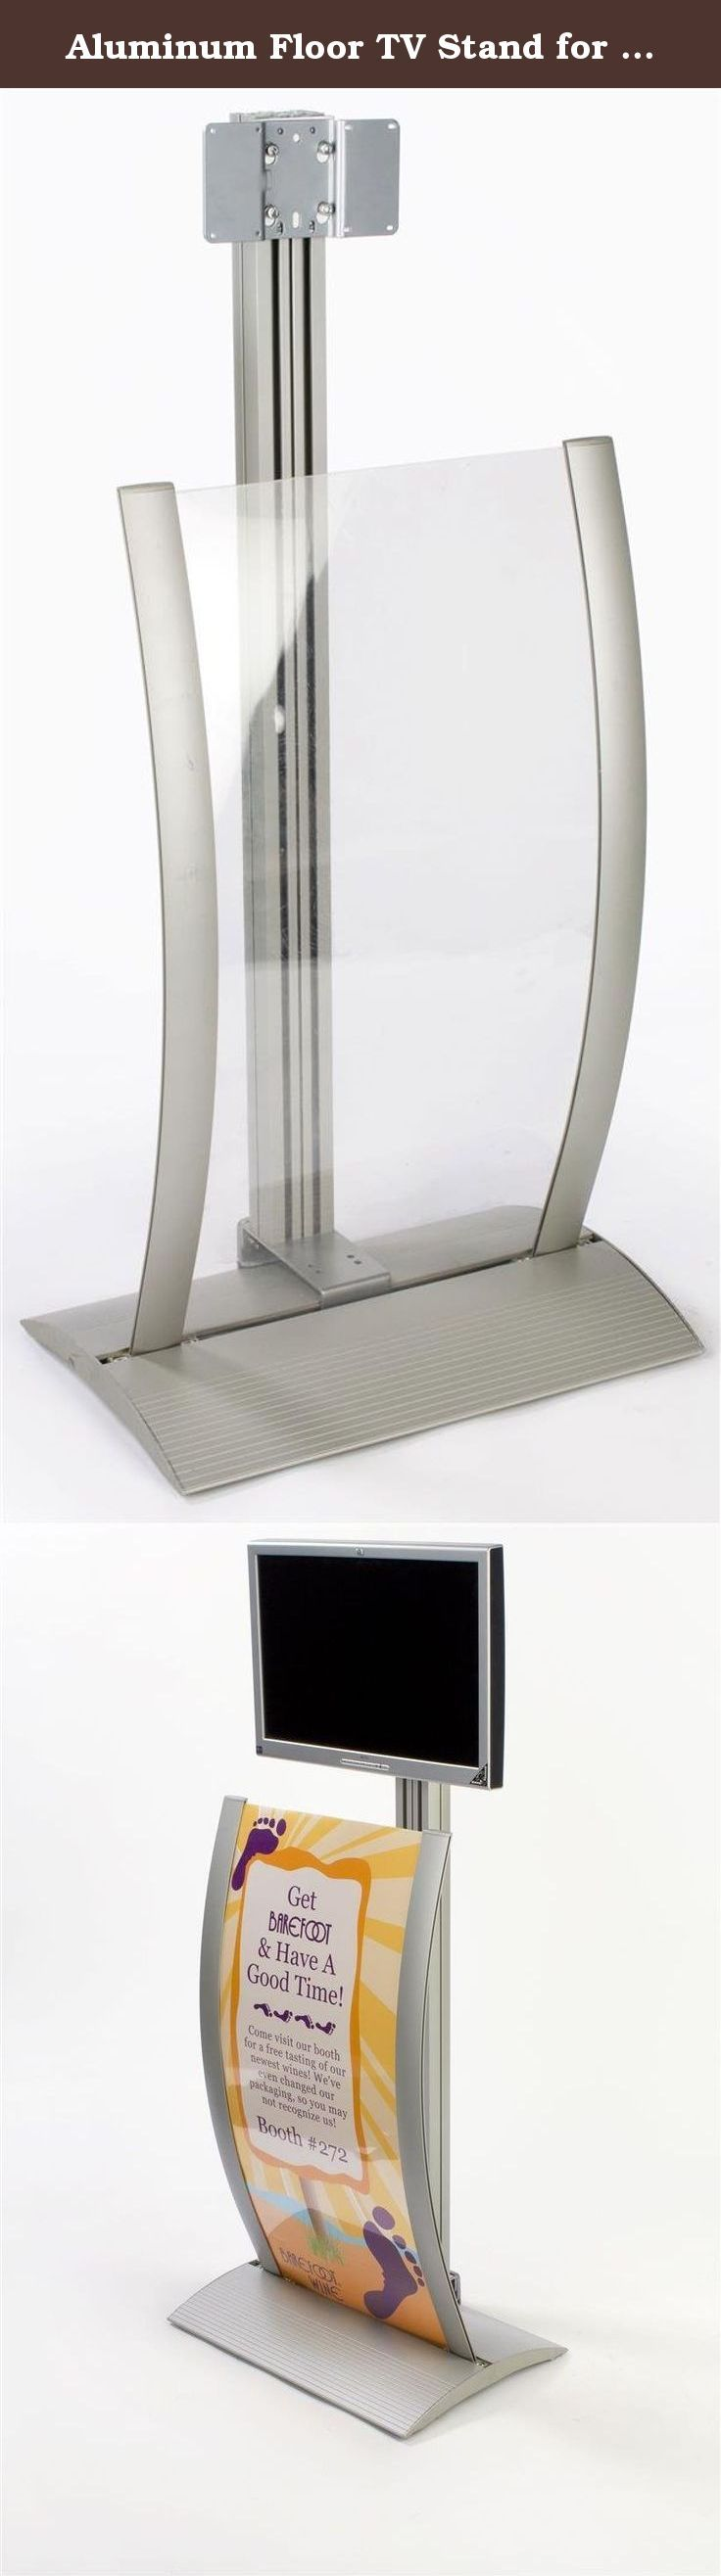 Aluminum Floor TV Stand for a 23 to 30 inch Monitor, with Curved Poster Frame (Graphics Not Included) - Silver. This floor TV stand differs from most LCD or plasma television holders as it includes a large-size poster frame at the front of the display. The separate sign holder features a curved design and holds an 18 inch wide by 37 inch long graphic (not included.) When designing your artwork, please keep in mind that 0.5 inches on each side is covered by the aluminum framing. The poster...